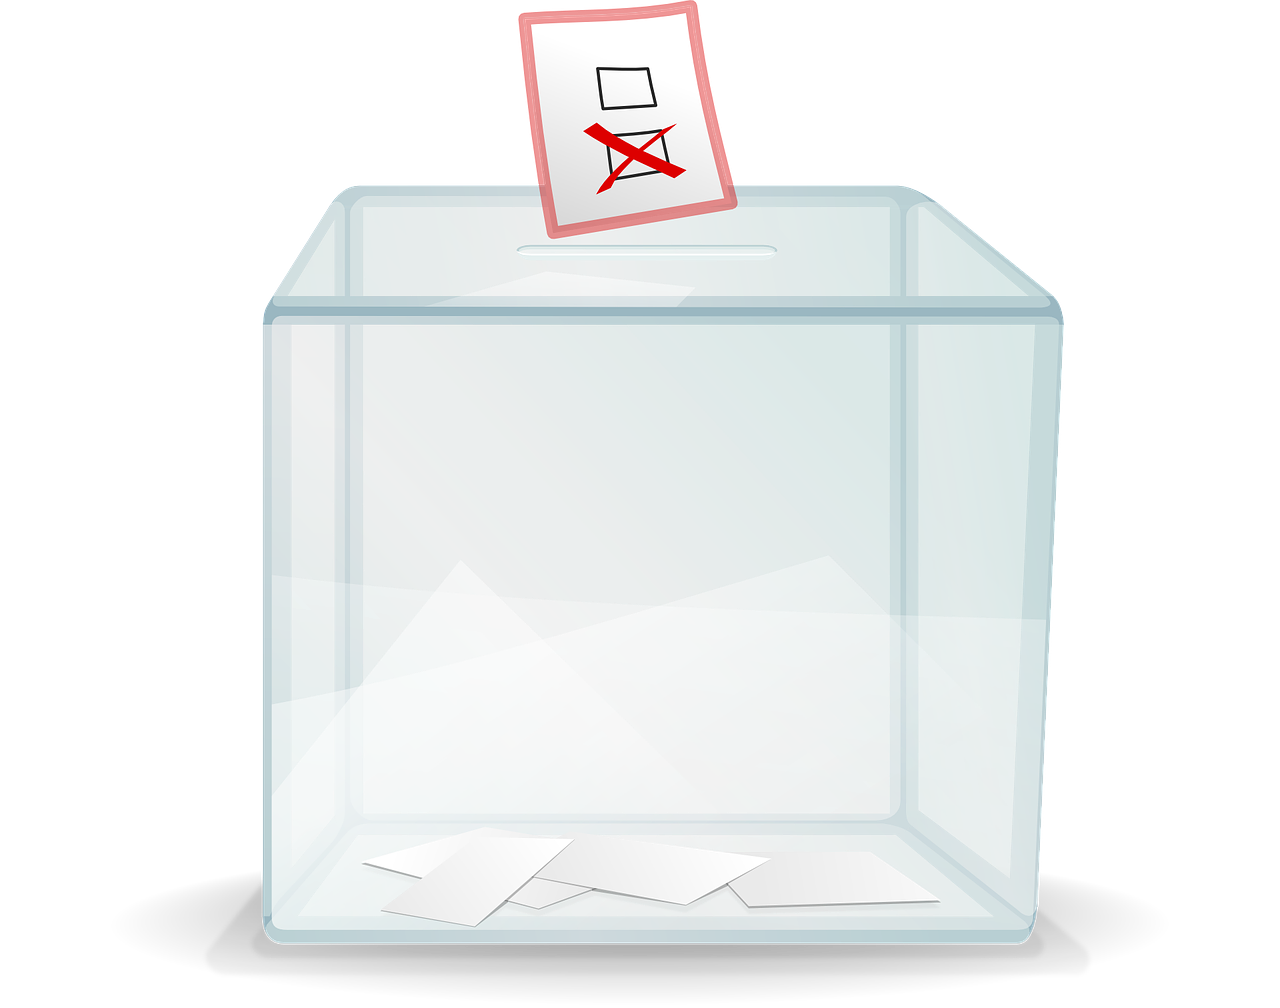 ballot-box-32384_1280-1.png